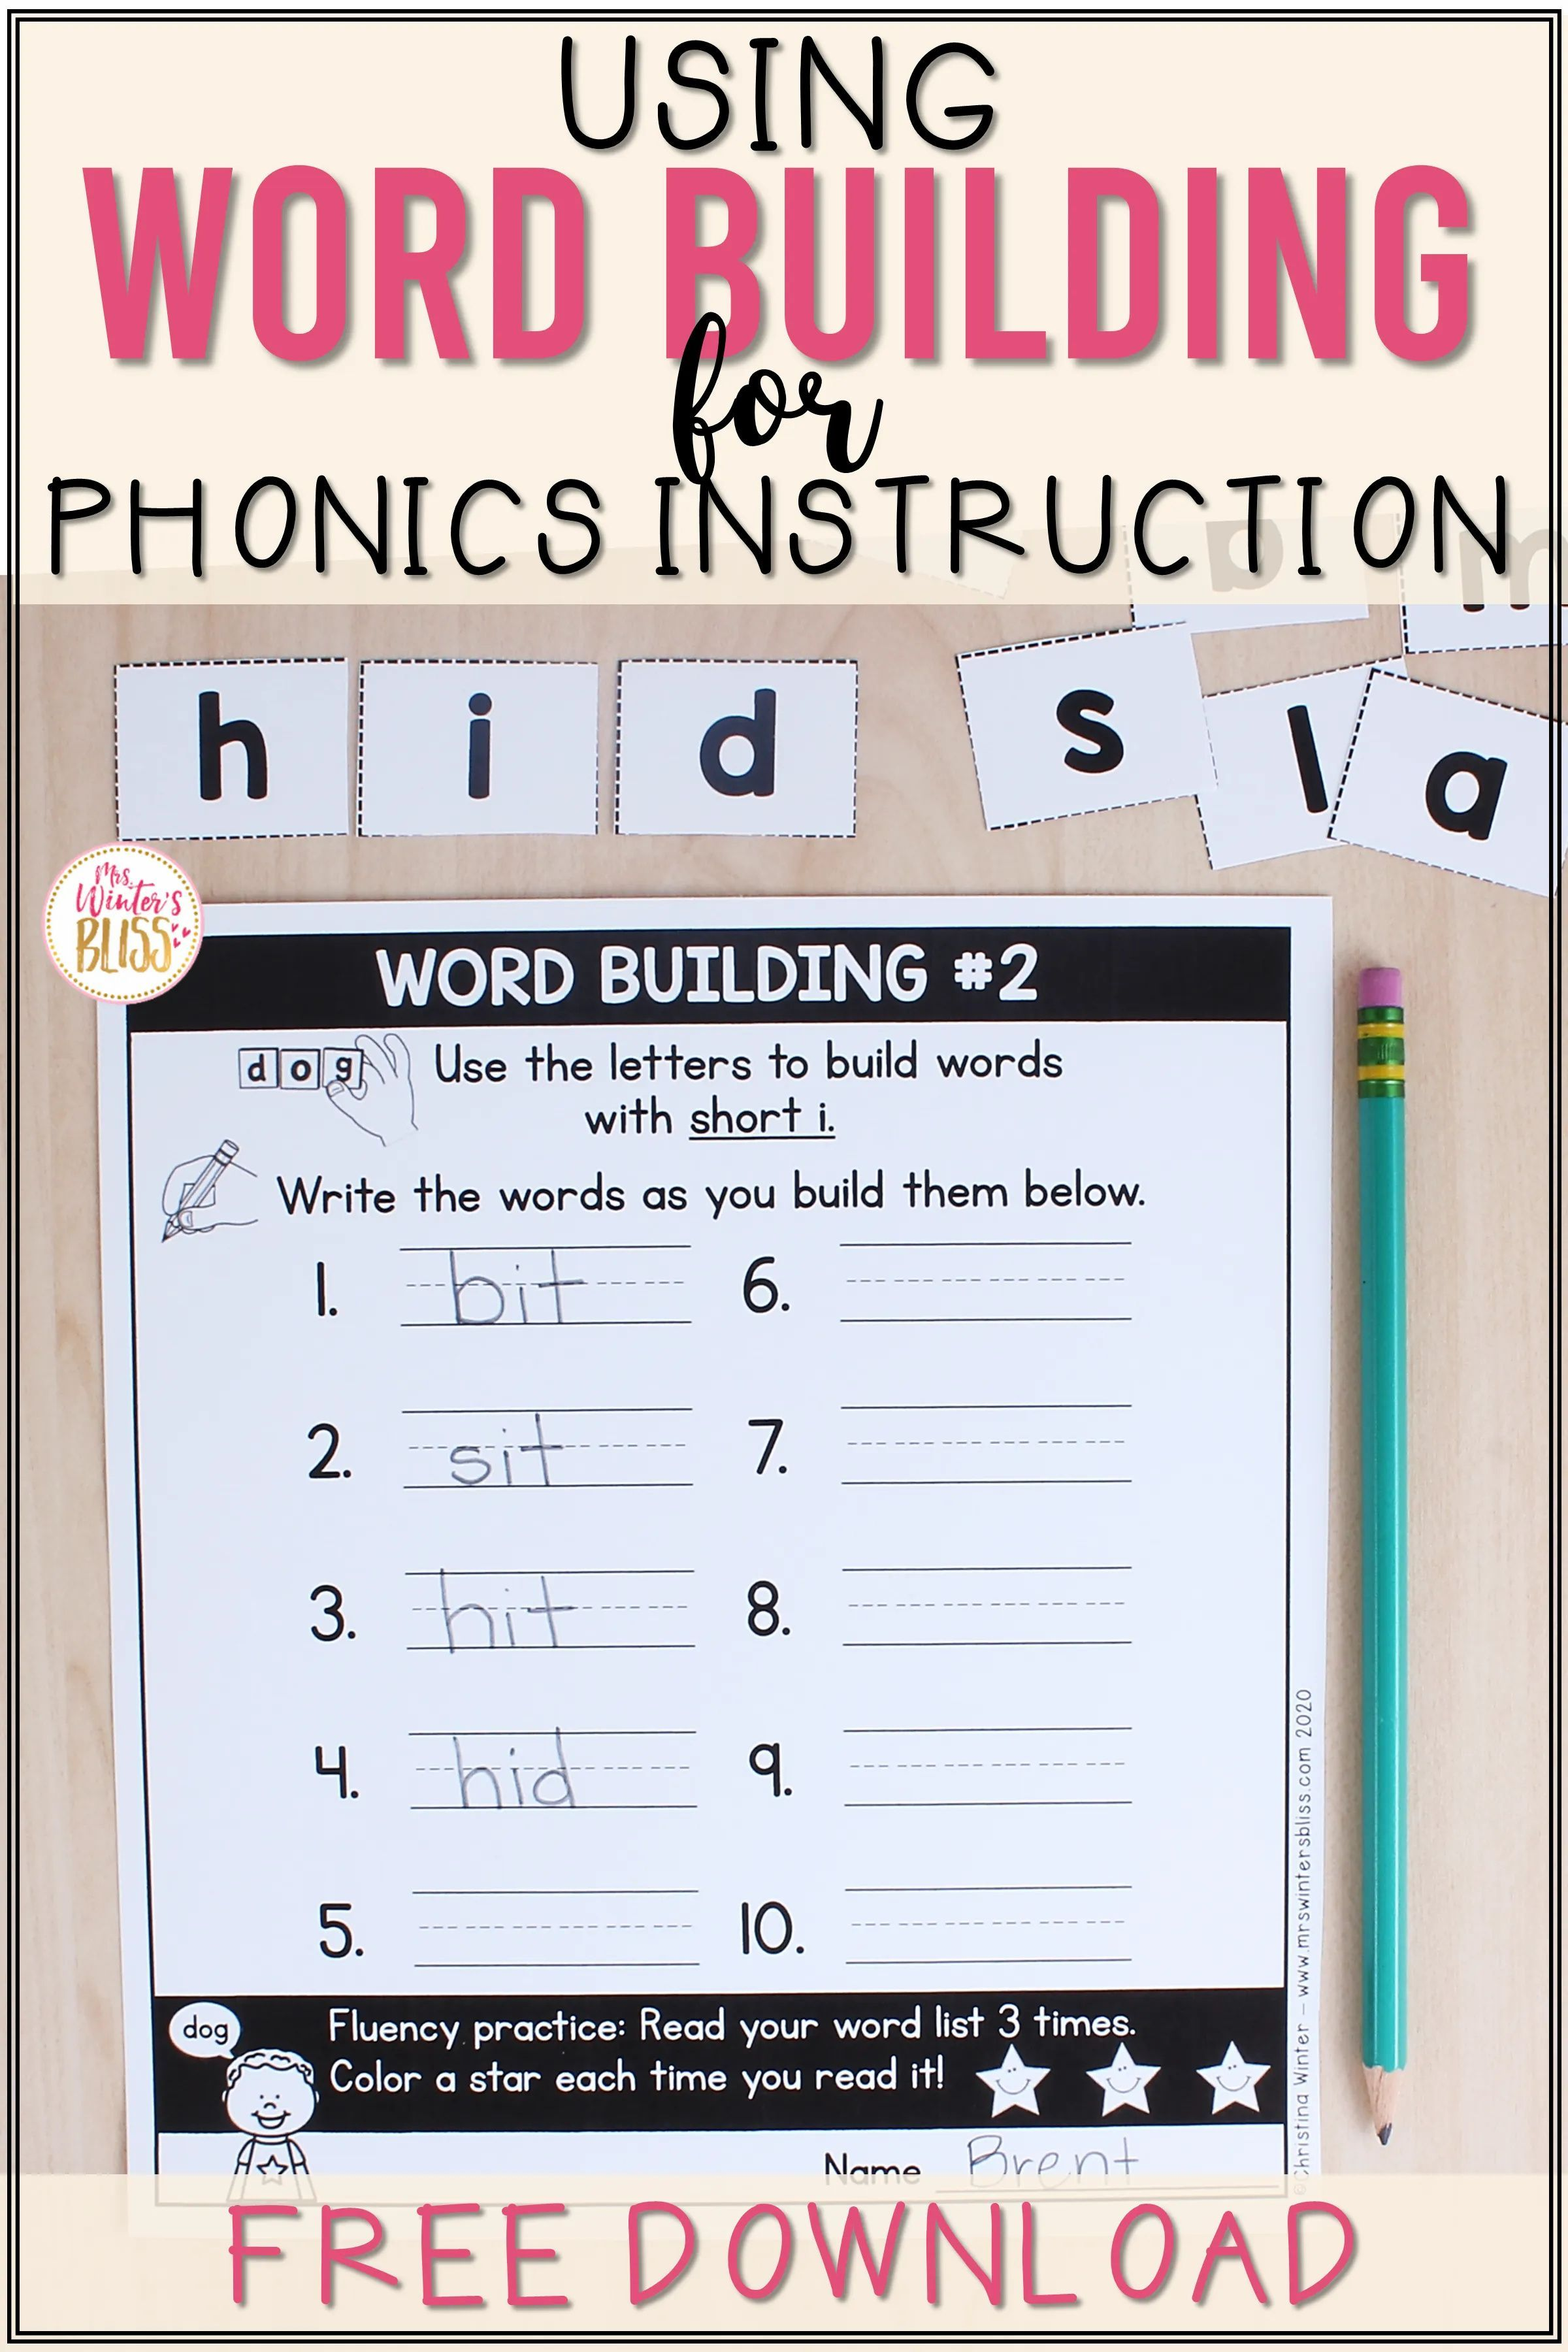 hight resolution of Read The Instructions Worksheet Trick   Printable Worksheets and Activities  for Teachers